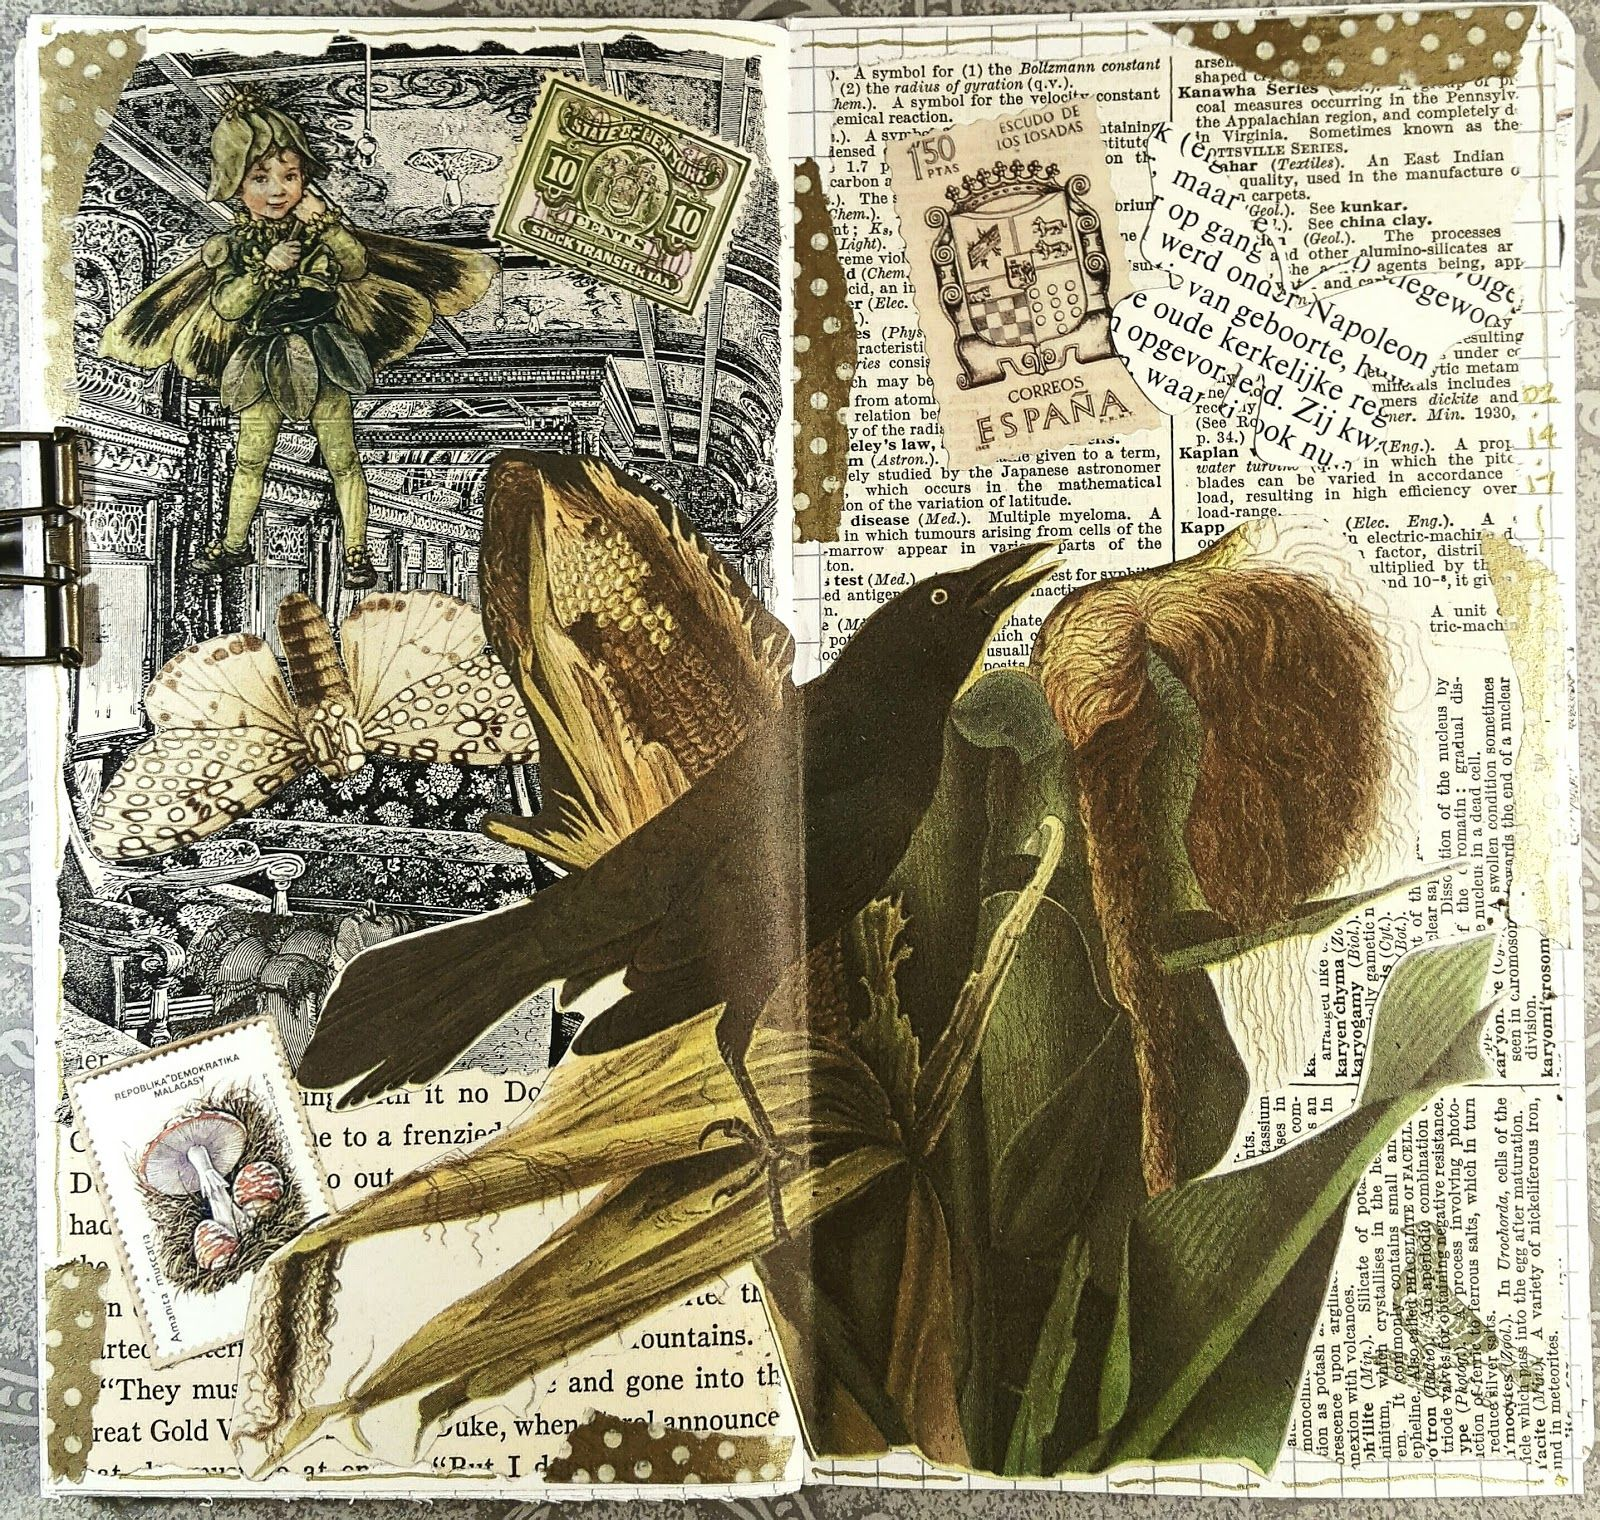 Mixed Media Painting Collage Book Arts Textiles Surface Design And General Musings About My Creative Life Art Collage Art Mixed Media Fairy Art